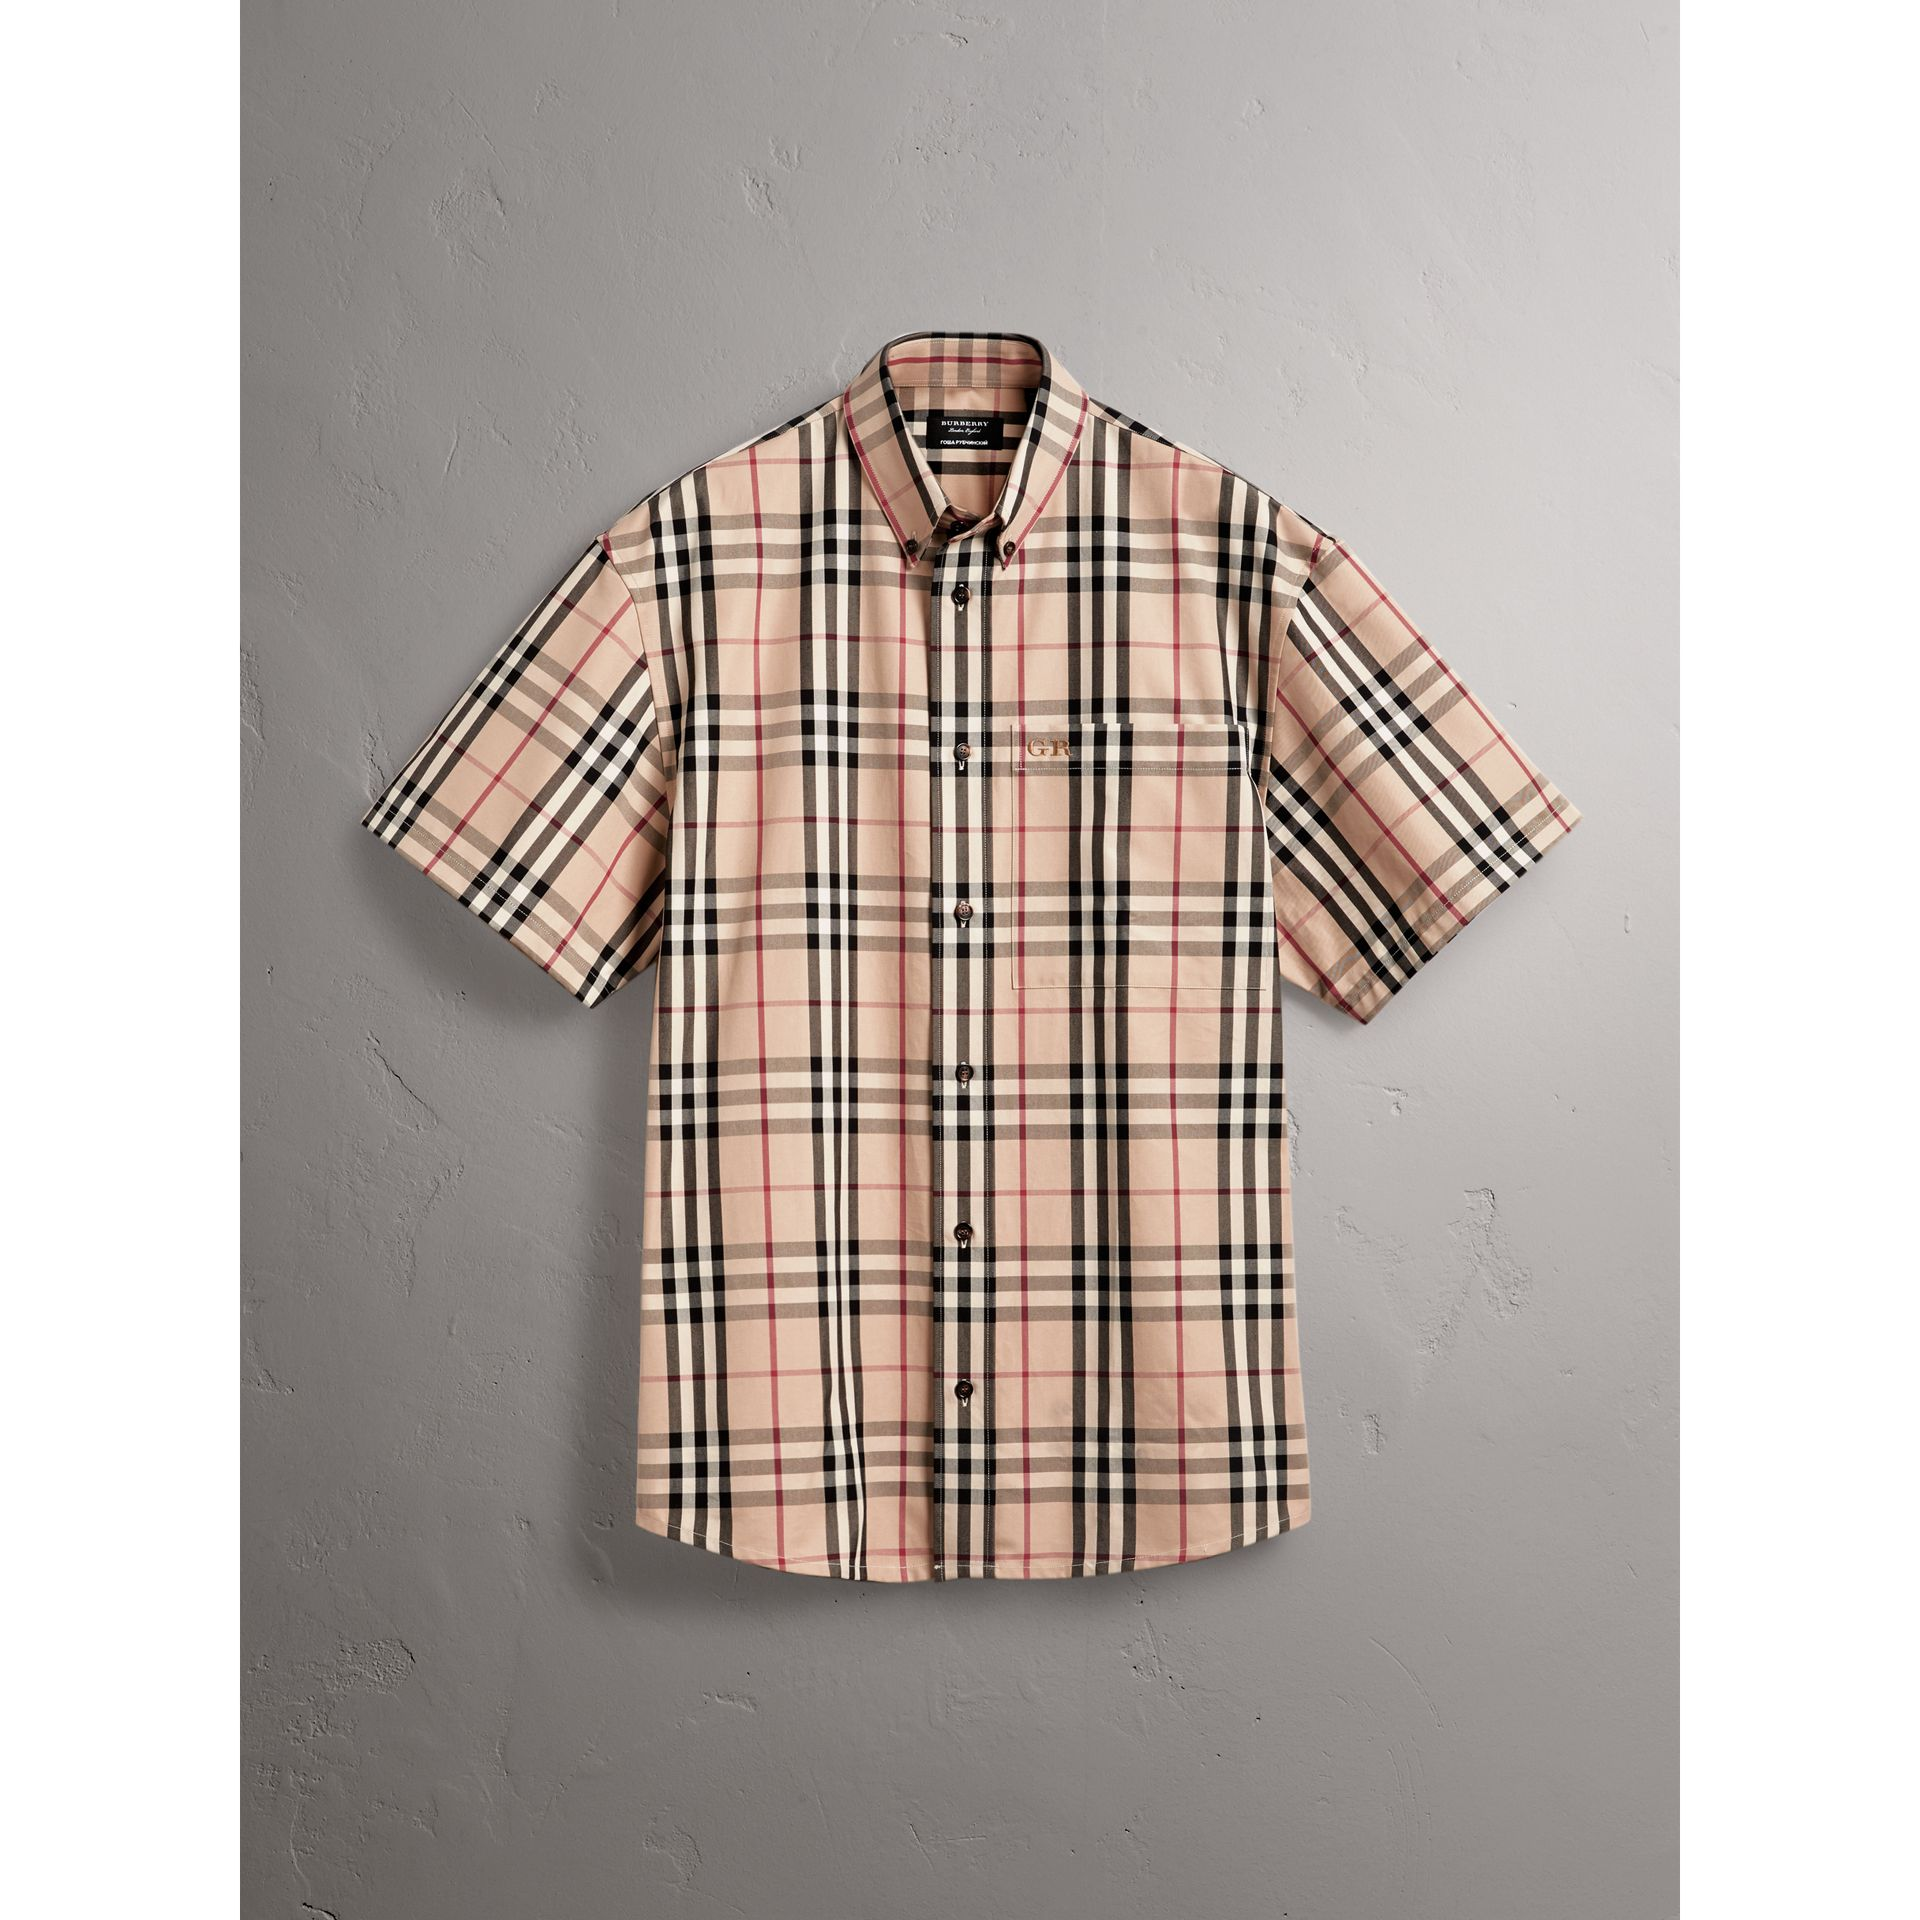 Gosha x Burberry Short-sleeve Check Shirt in Honey | Burberry Australia - gallery image 4